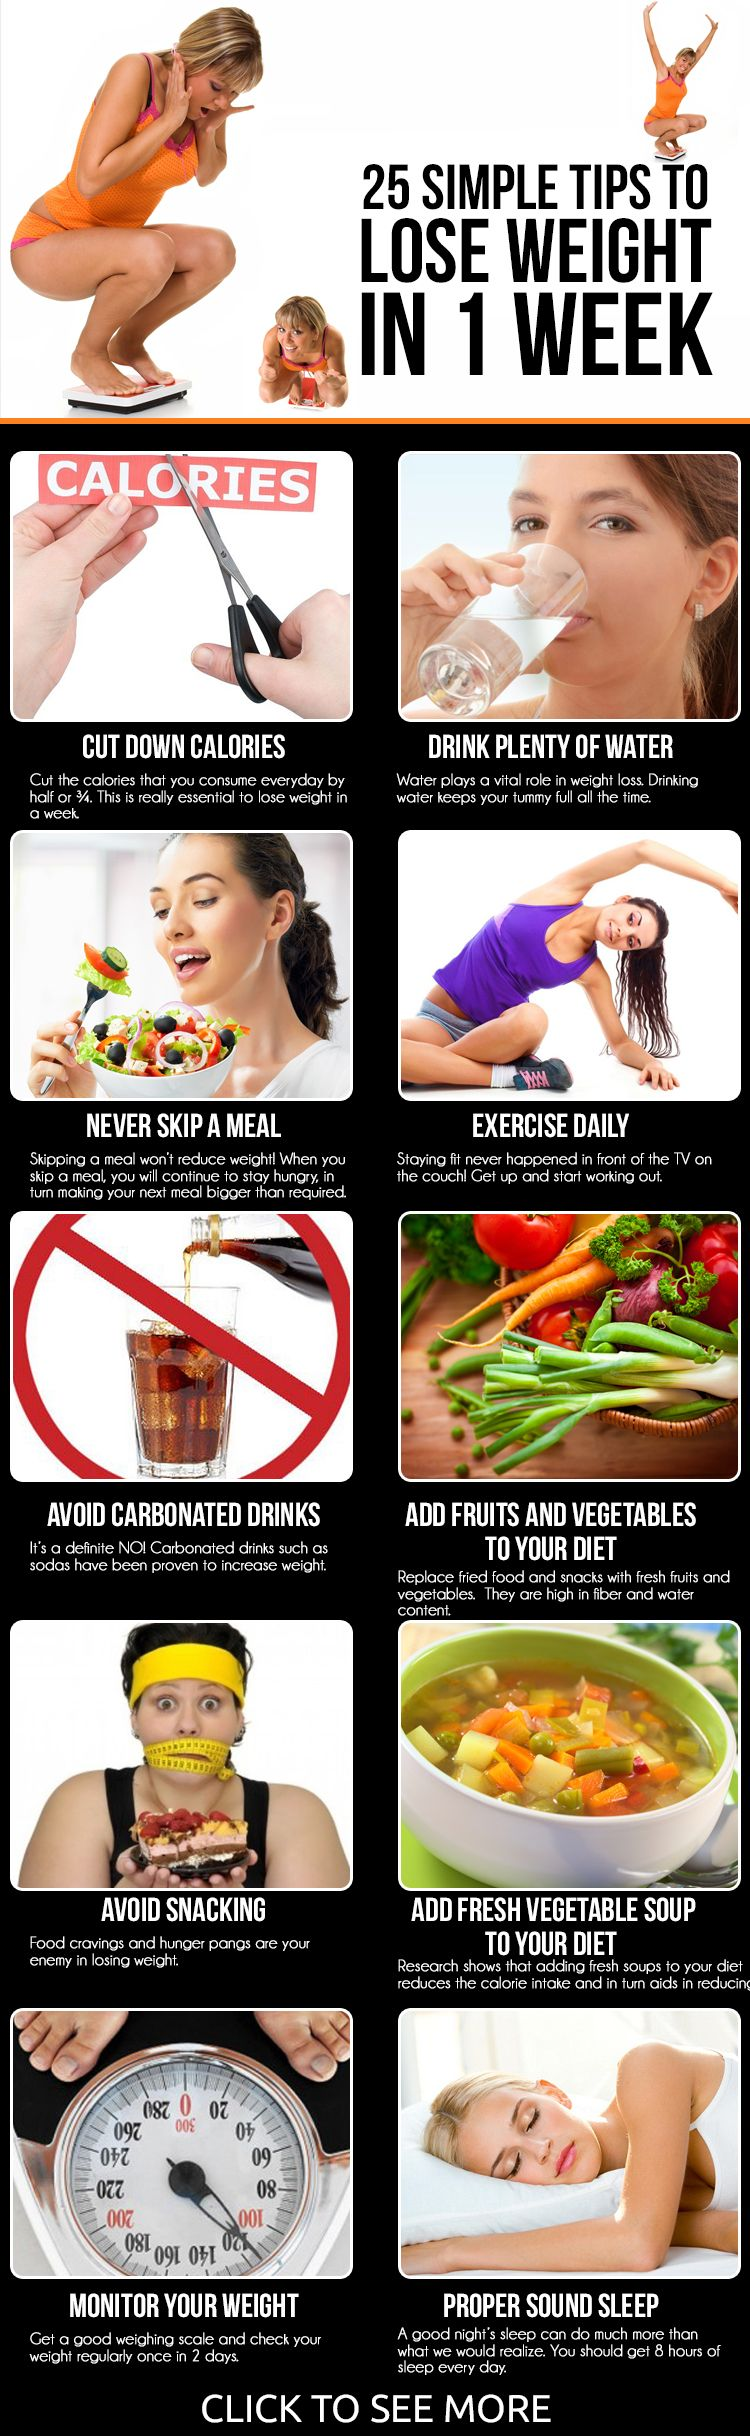 Weight Loss : Here are 25 simple pointers on a weekly diet plan to lose weight: http://fitbody360.net/diet-plans/... #WeightLoss #LosingWeightTips